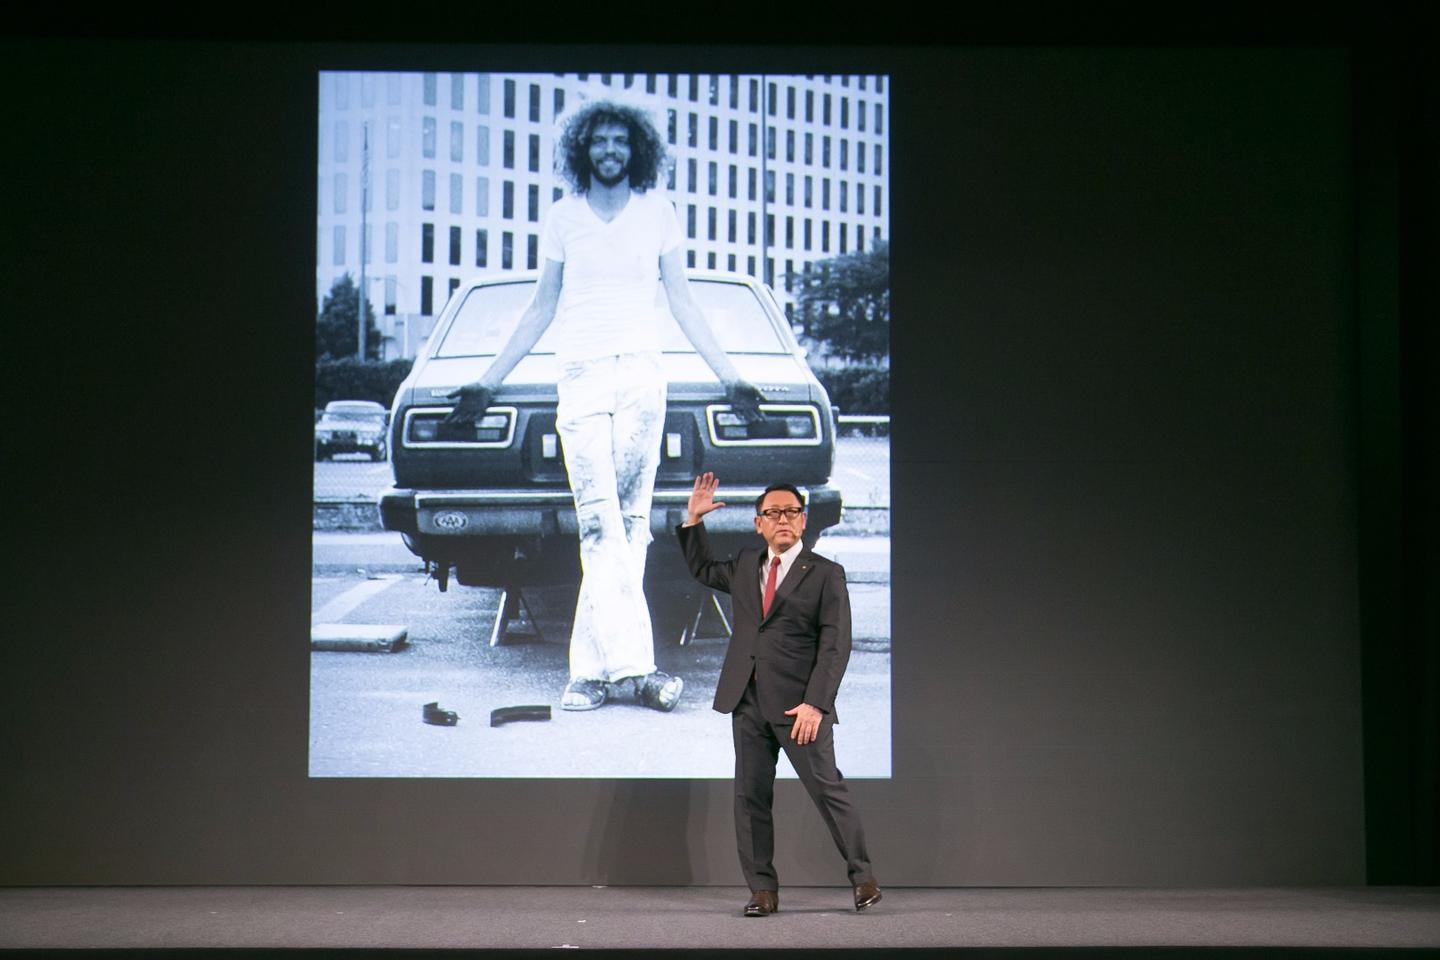 Akio Toyoda, President of Toyota Motor Corporation show a slide of a younger Gill Pratt in front of his Toyota Corolla